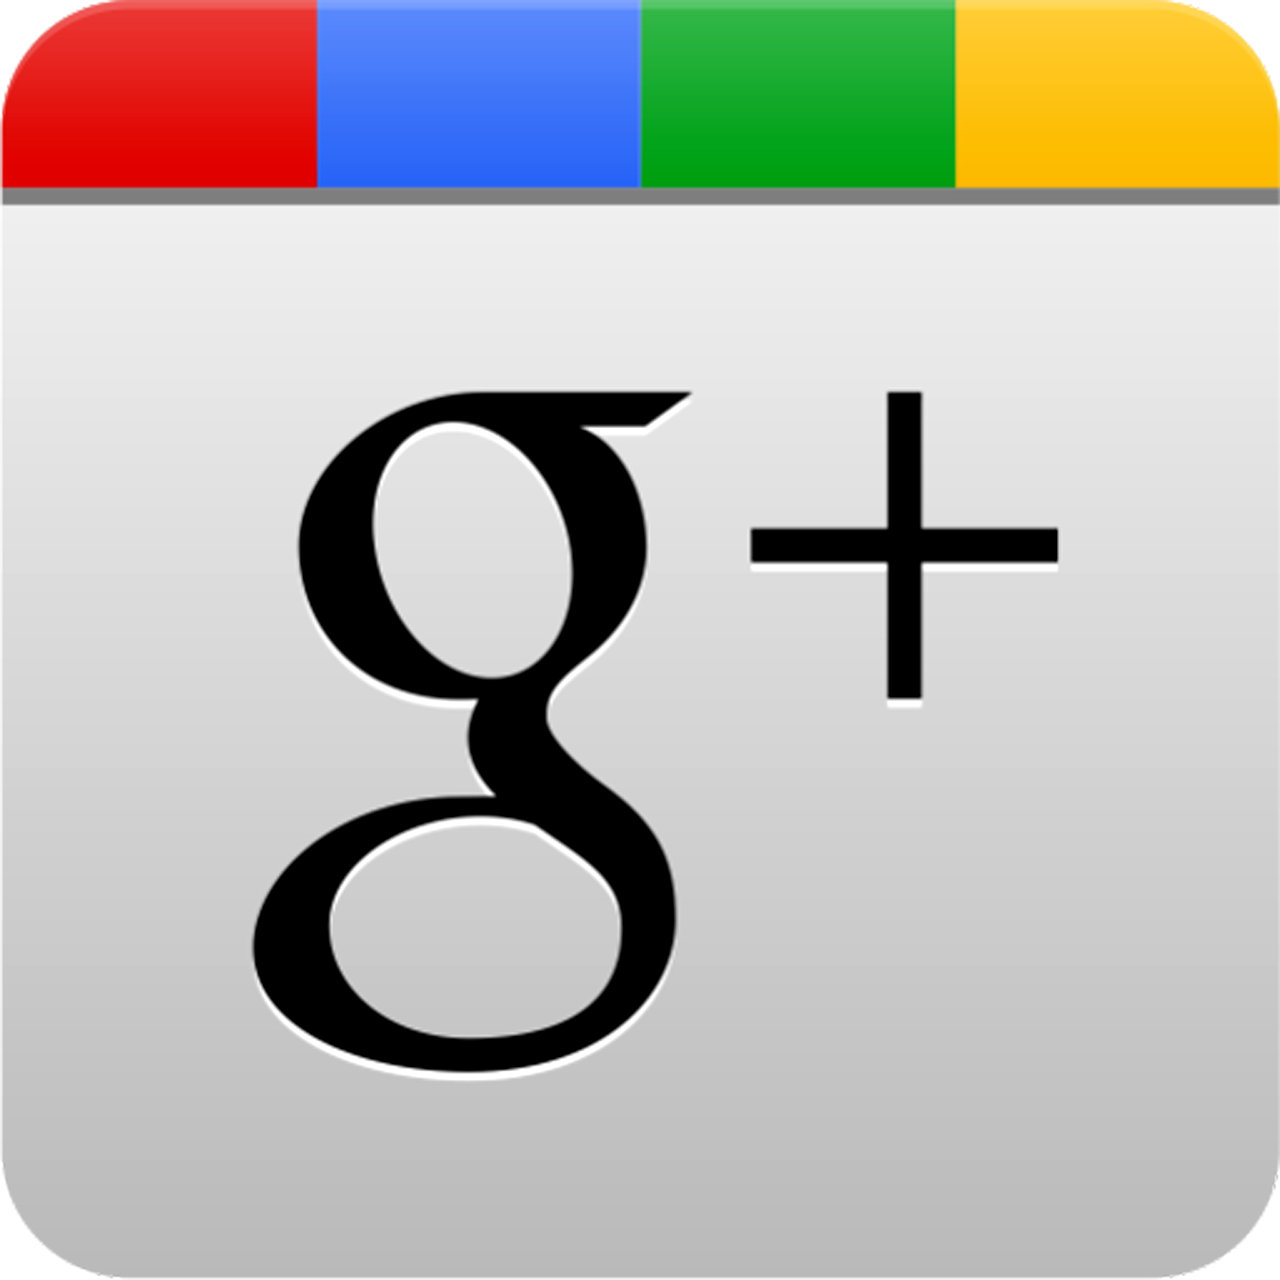 google plus g hd logo wallpaper download free wallpapers